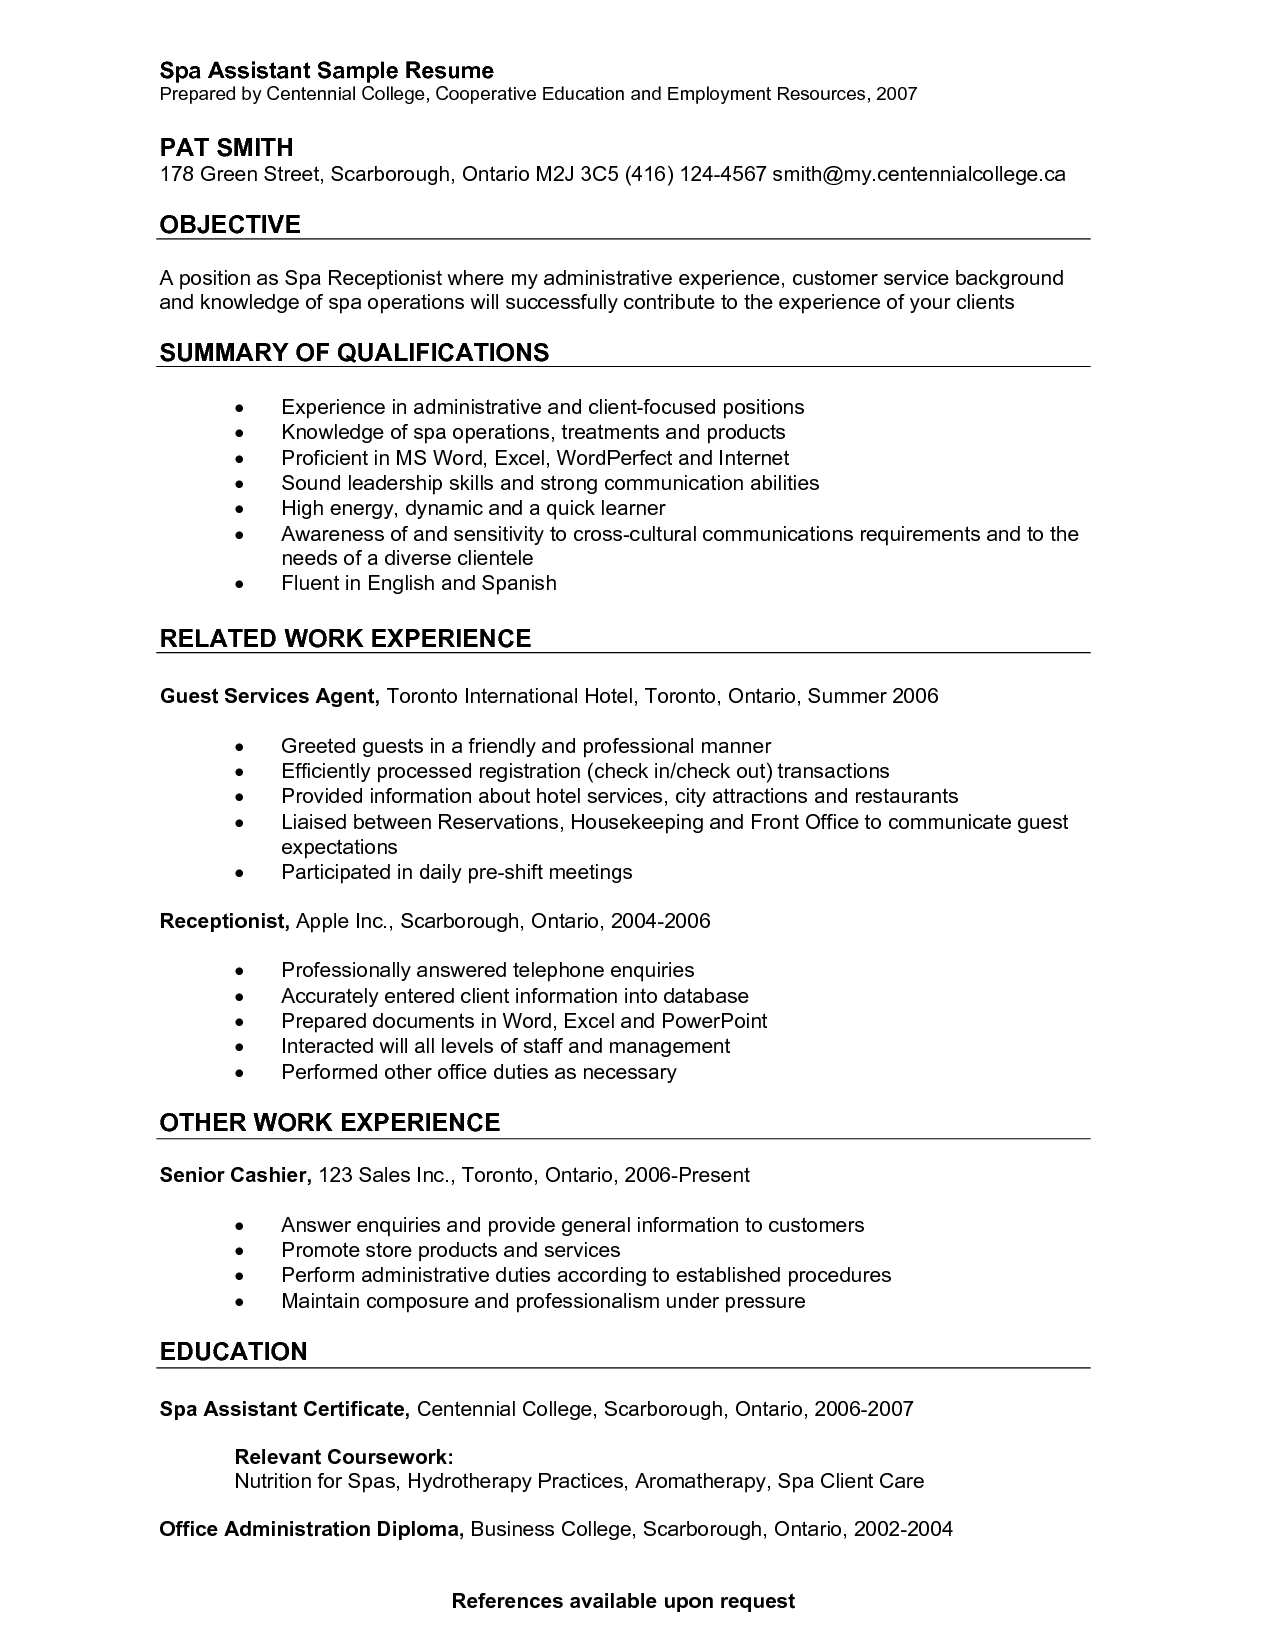 Resume For Concierge Personal Assistant Sample Best Spa Job